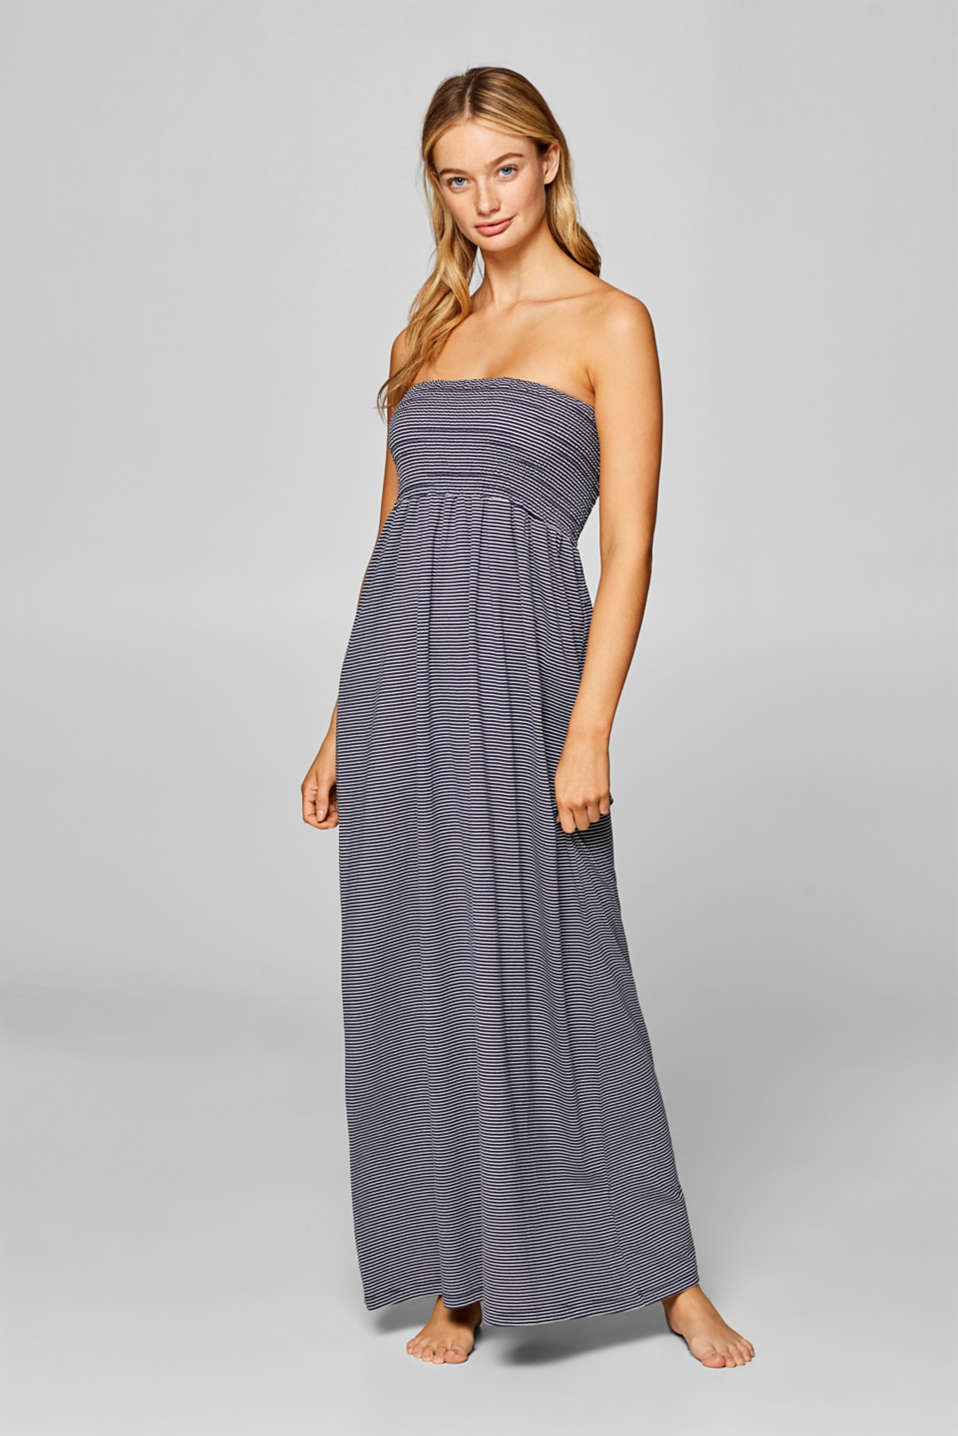 Esprit - Maxi dress with stripes, 100% cotton